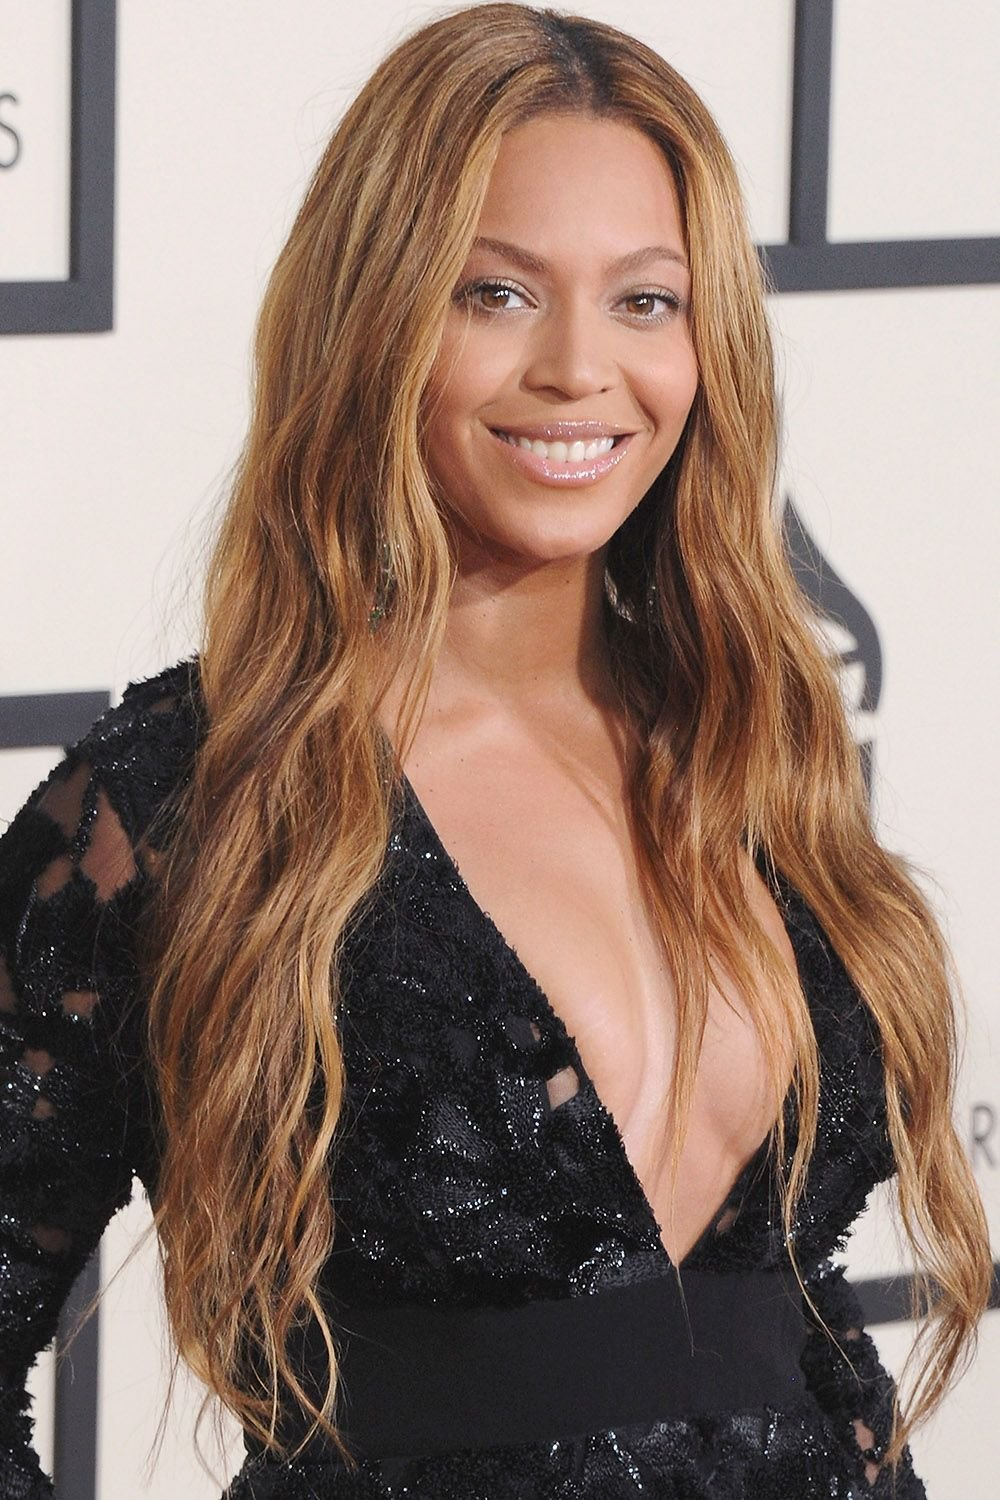 The Best 15 Best Caramel Hair Color Shades Celebrity Caramel Hair Pictures